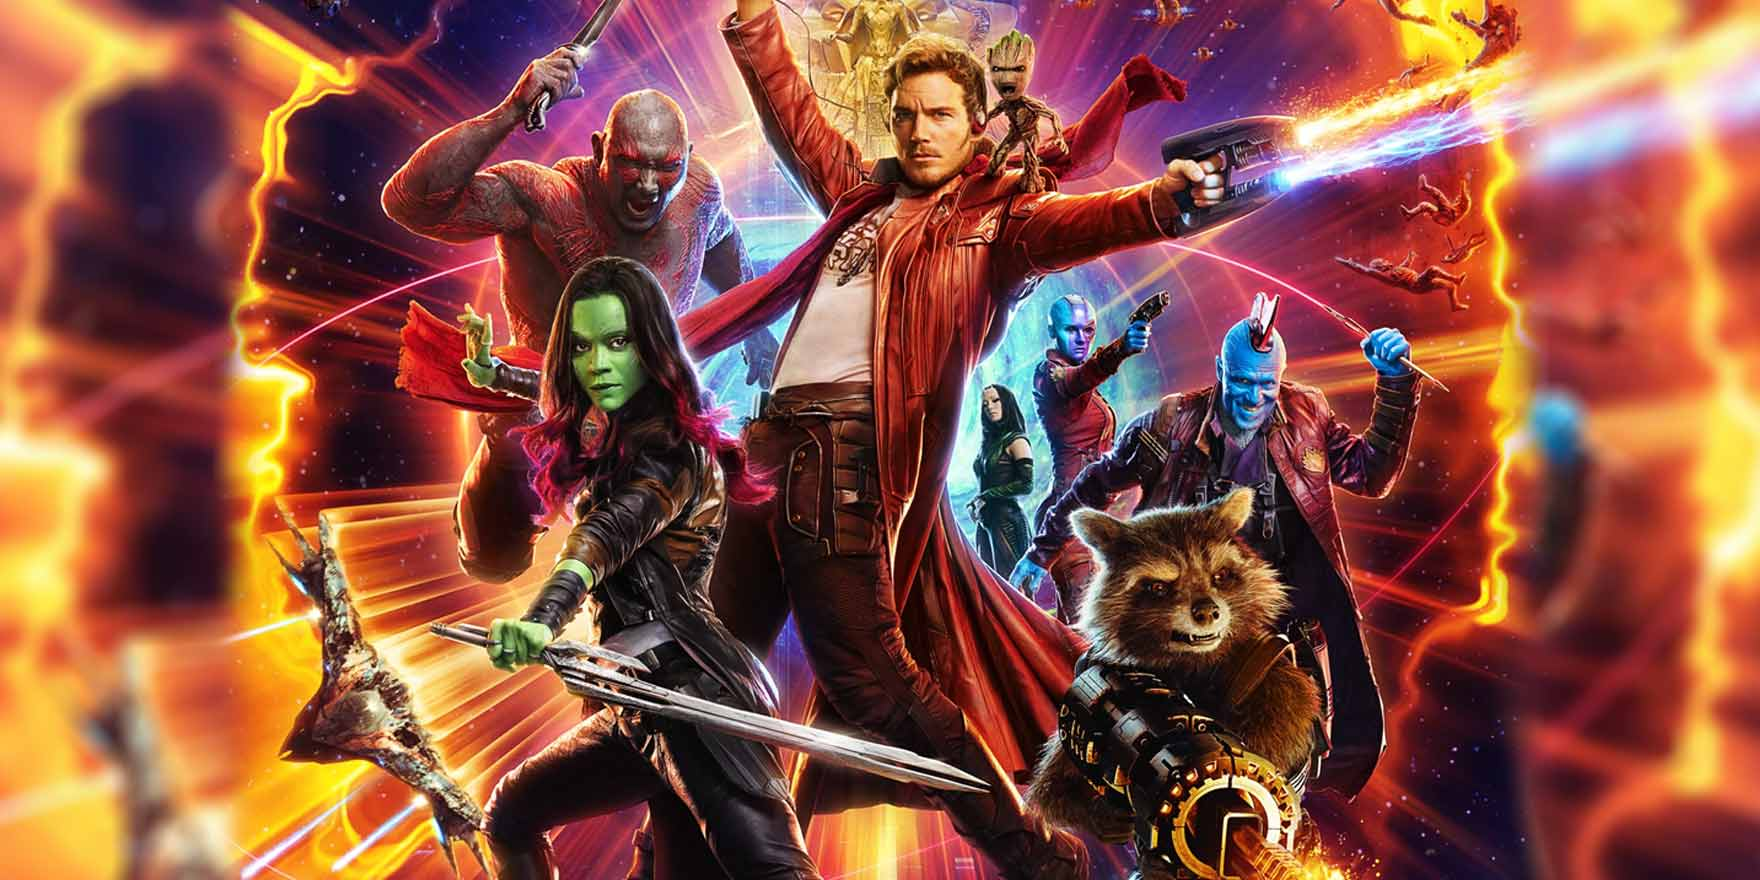 Guardians of the Galaxy Vol. 2 - Header Image